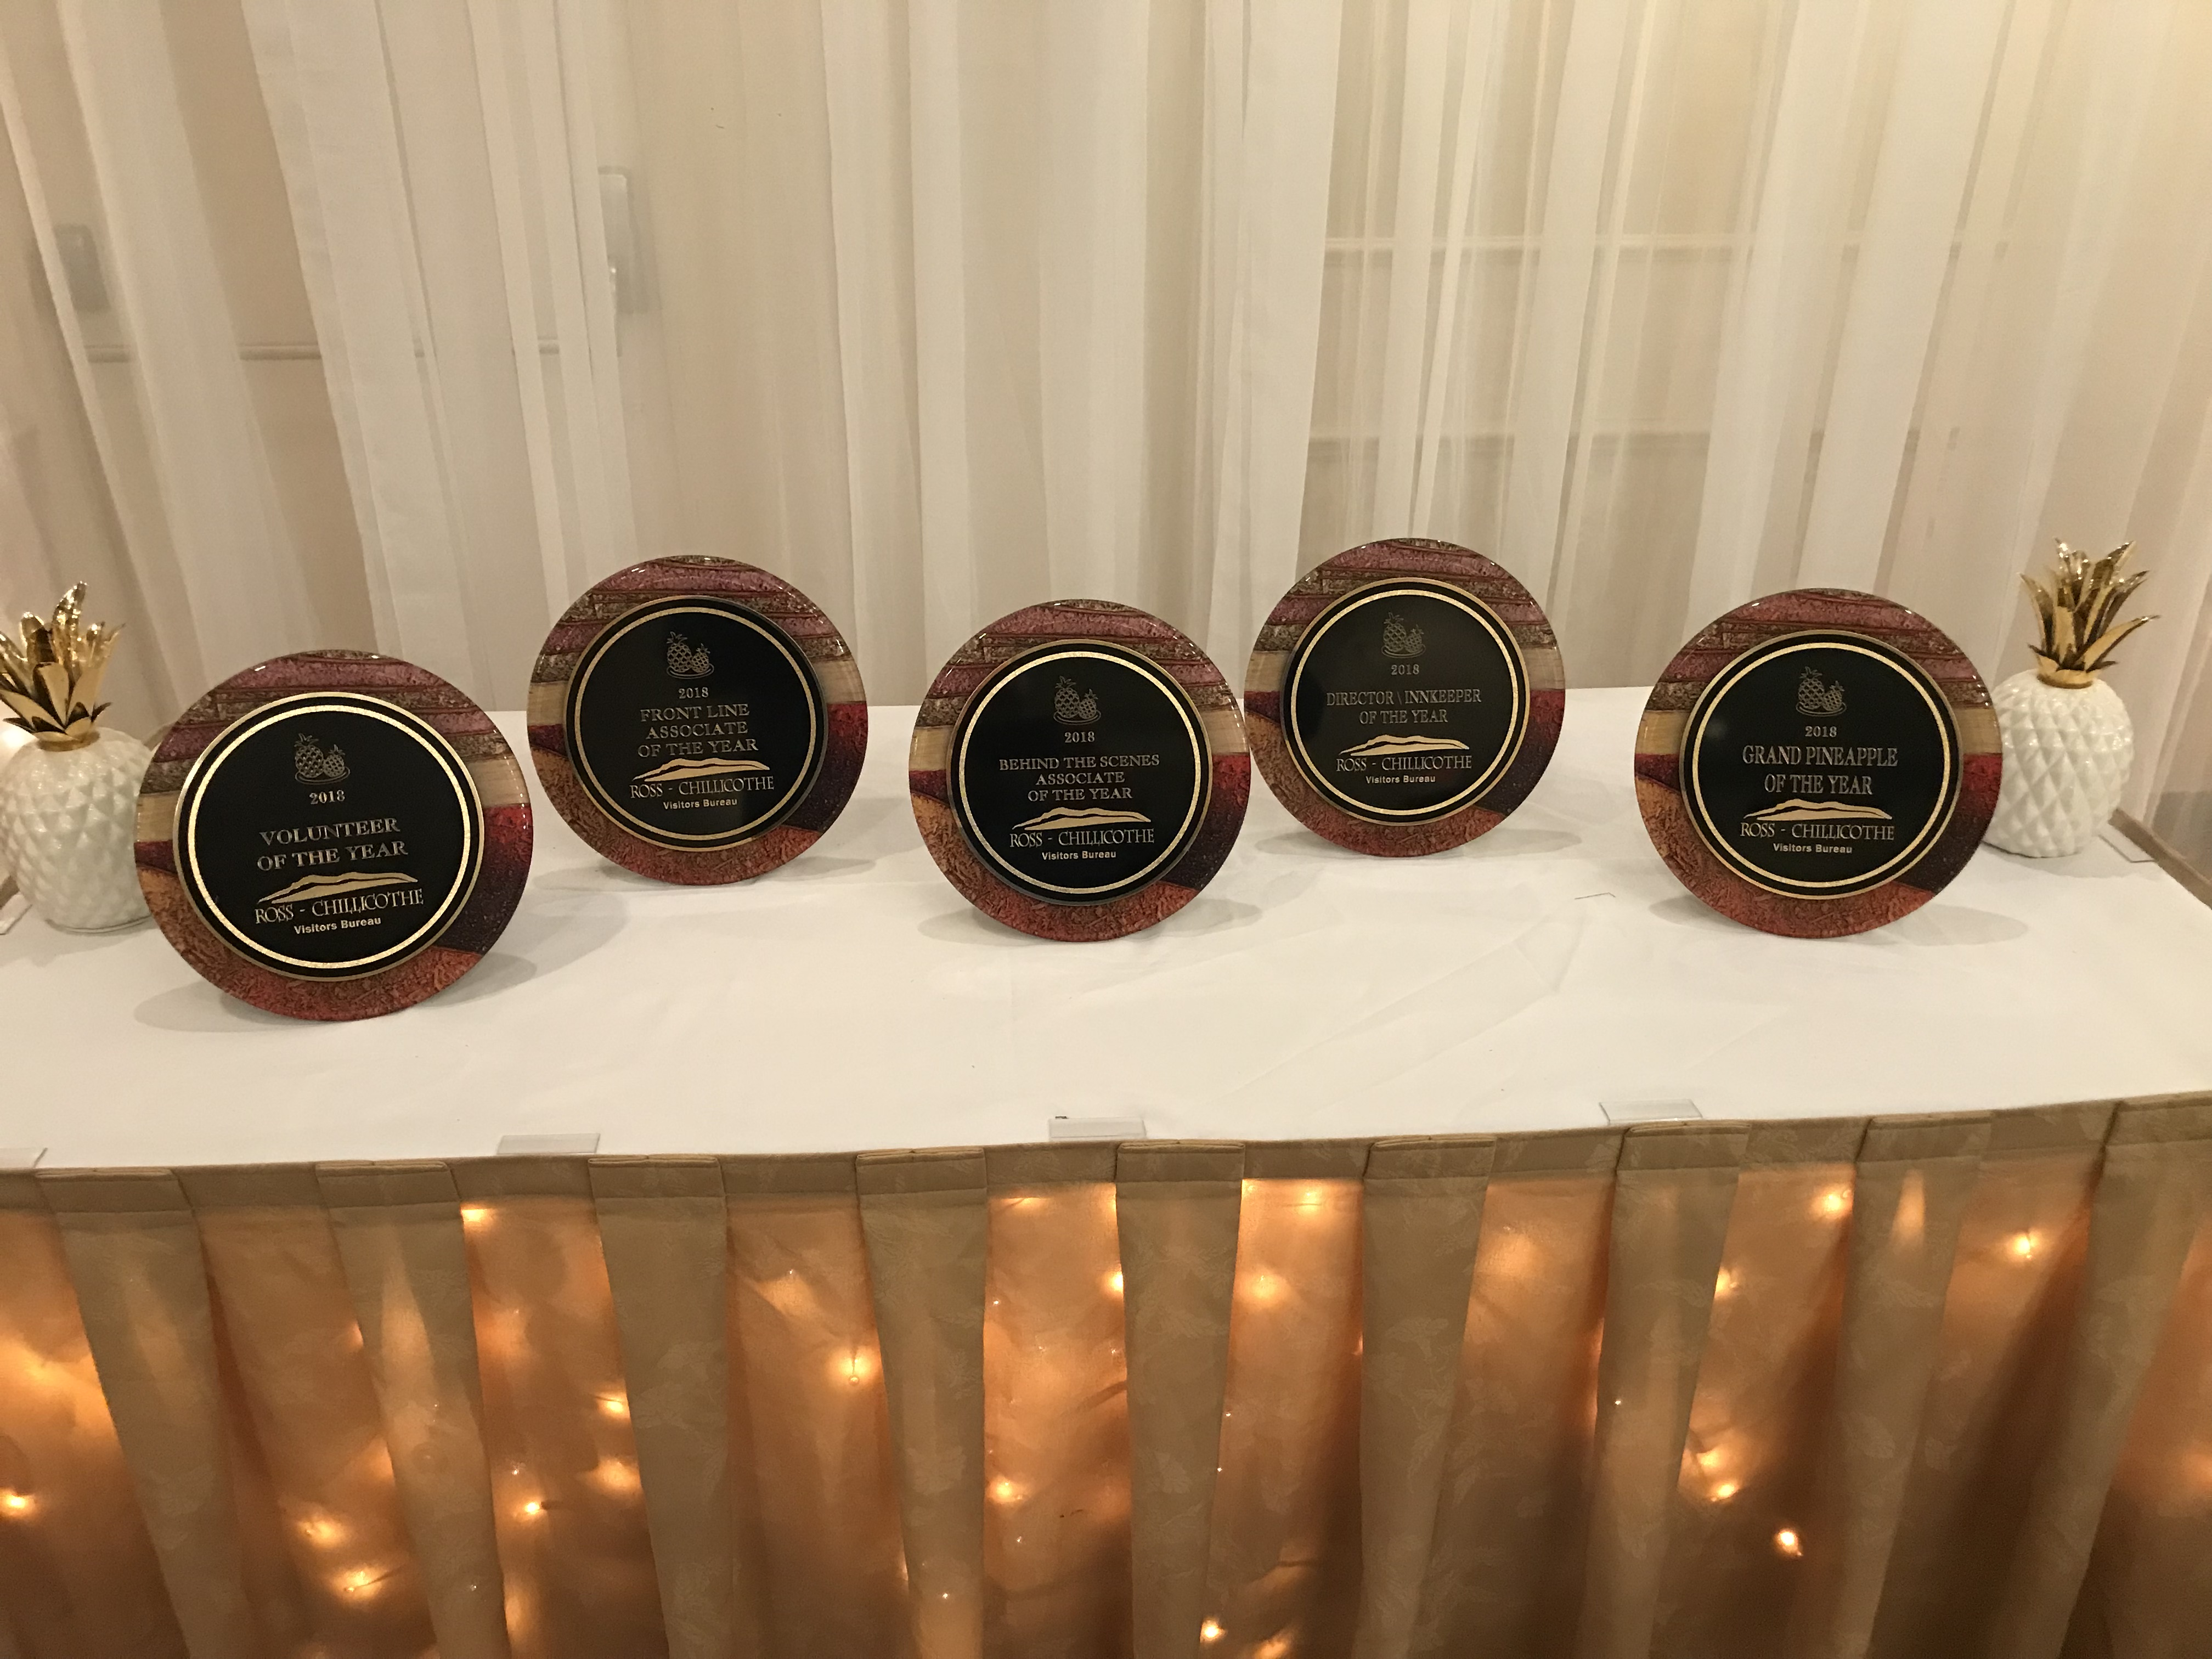 Ross County Tourism Banquet 2018